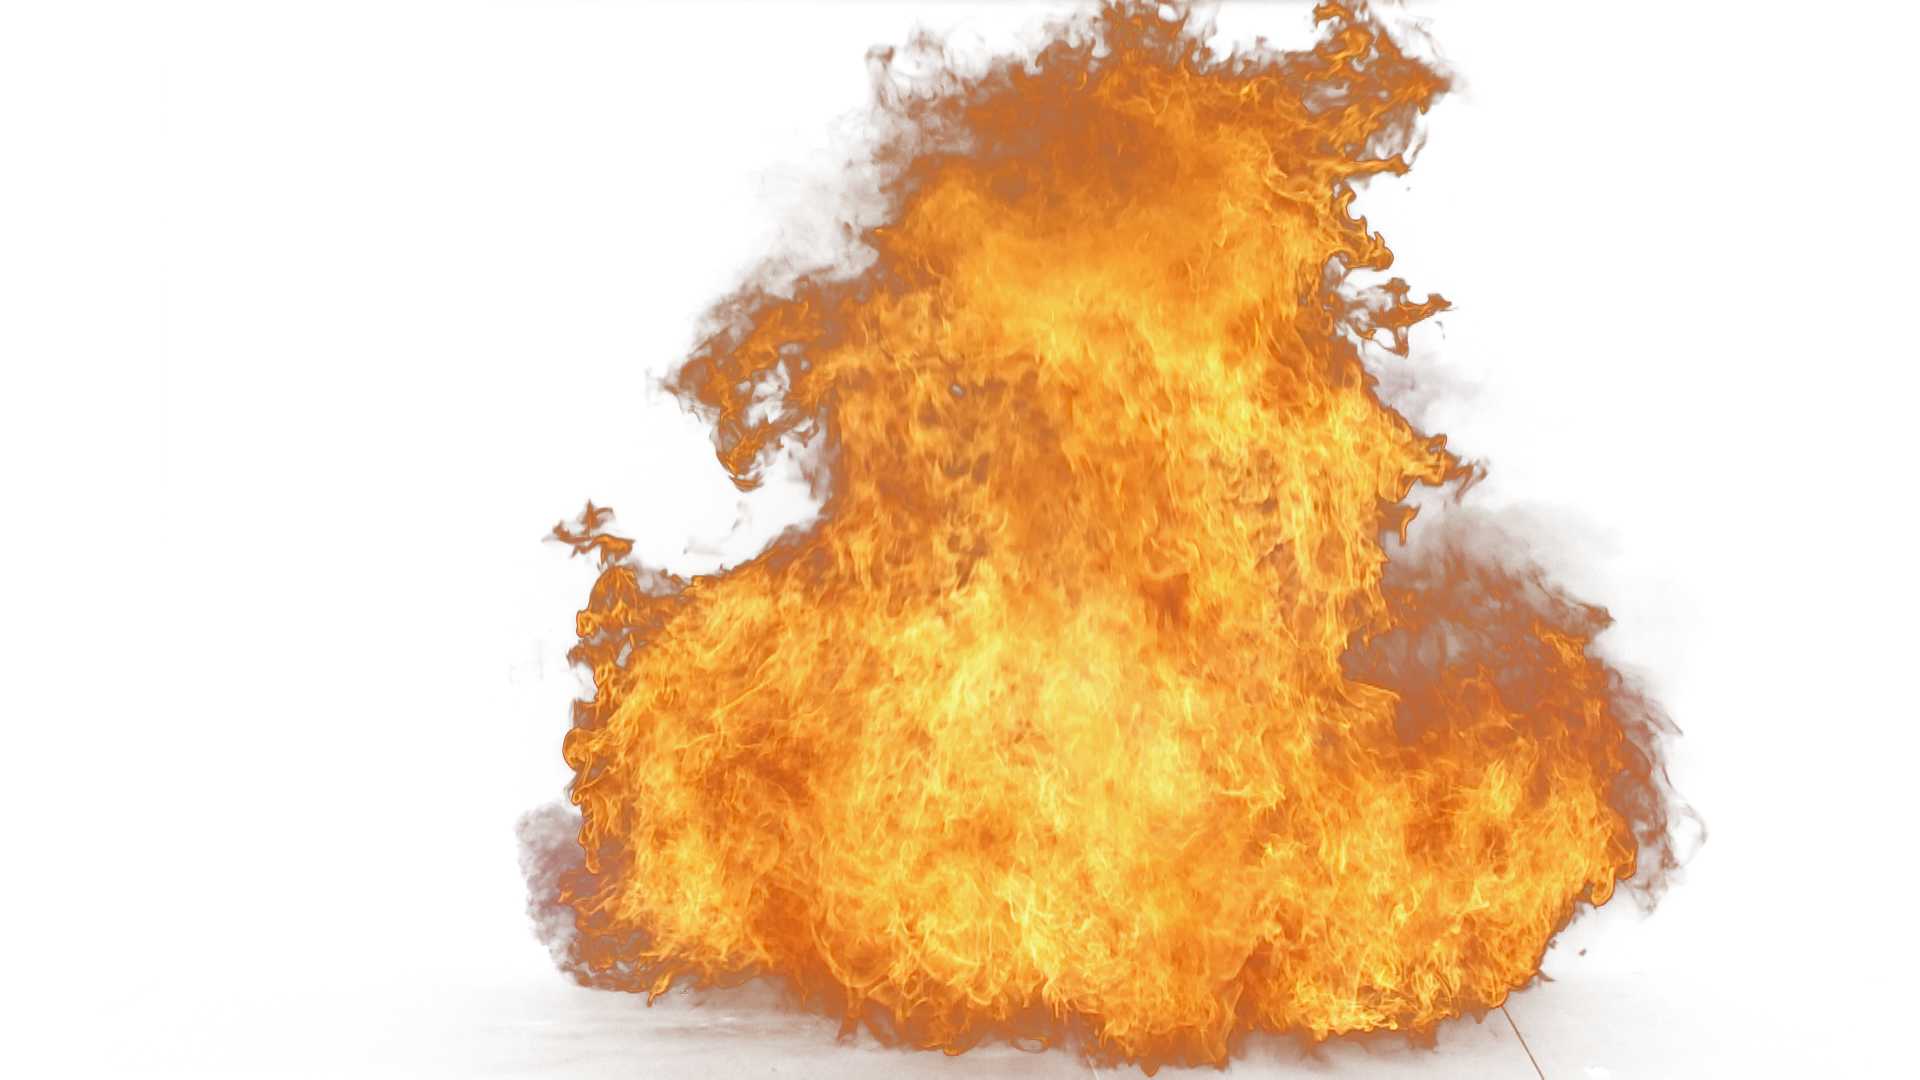 Explosion gif png. Hd transparent images pluspng